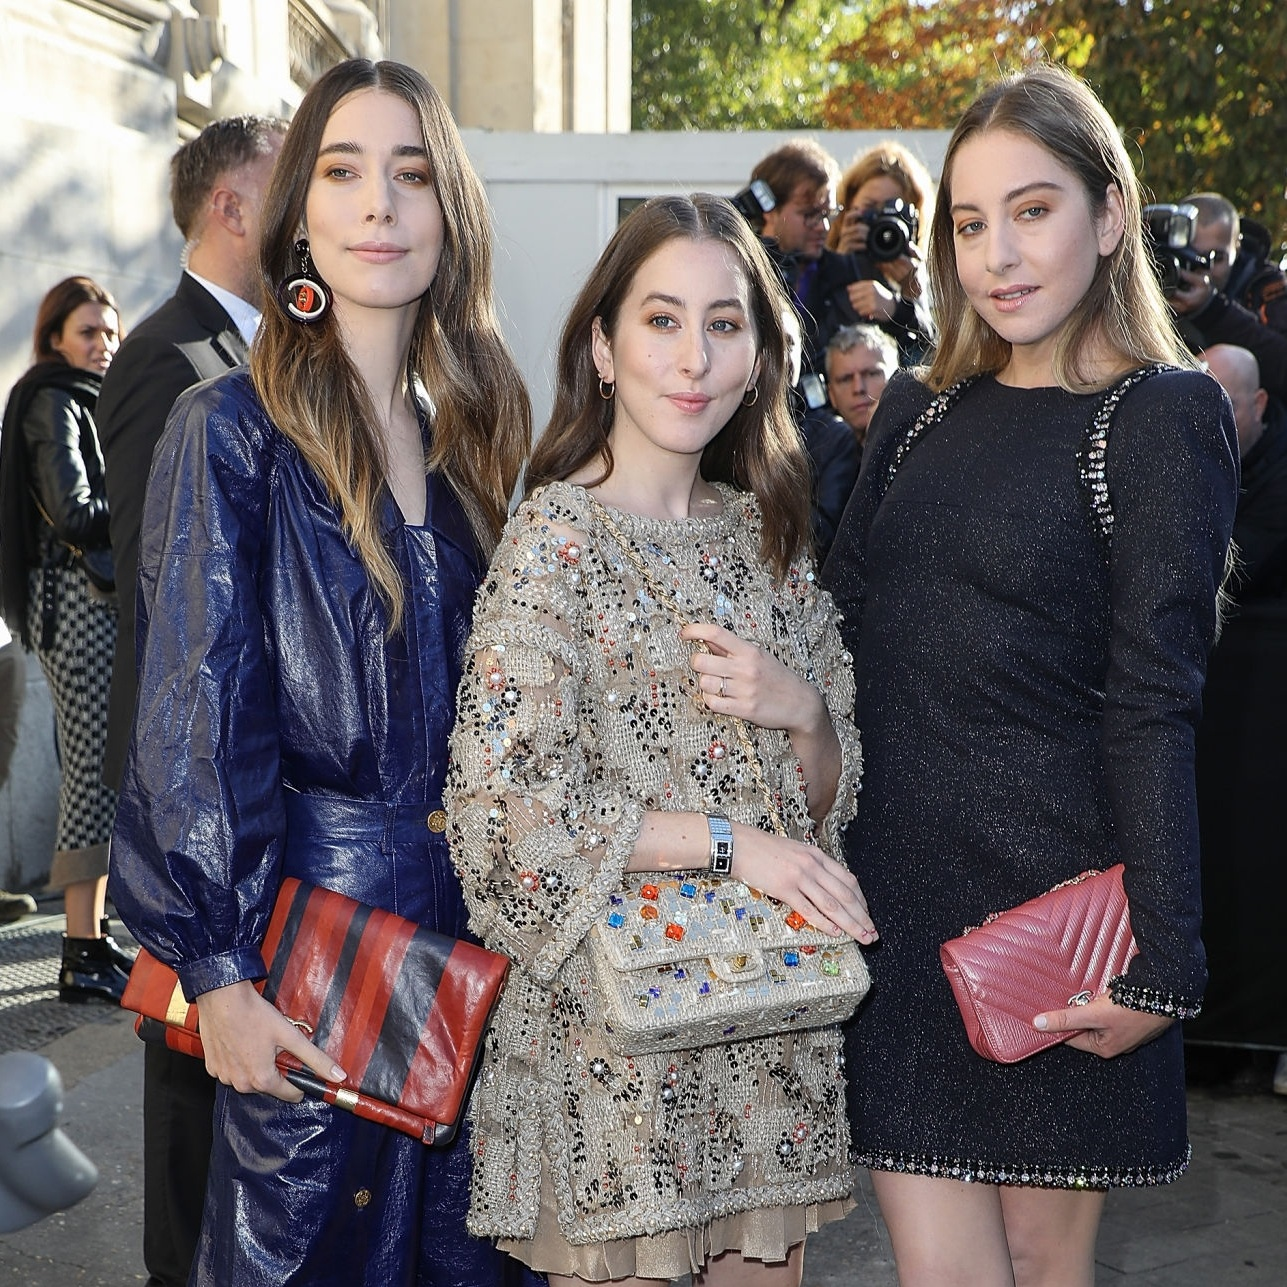 PARIS, FRANCE - OCTOBER 03:  Pop band Haim arrive at the Chanel show as part of the Paris Fashion Week Womenswear  Spring/Summer 2018 on October 3, 2017 in Paris, France.  (Photo by Pierre Suu/Getty Images)